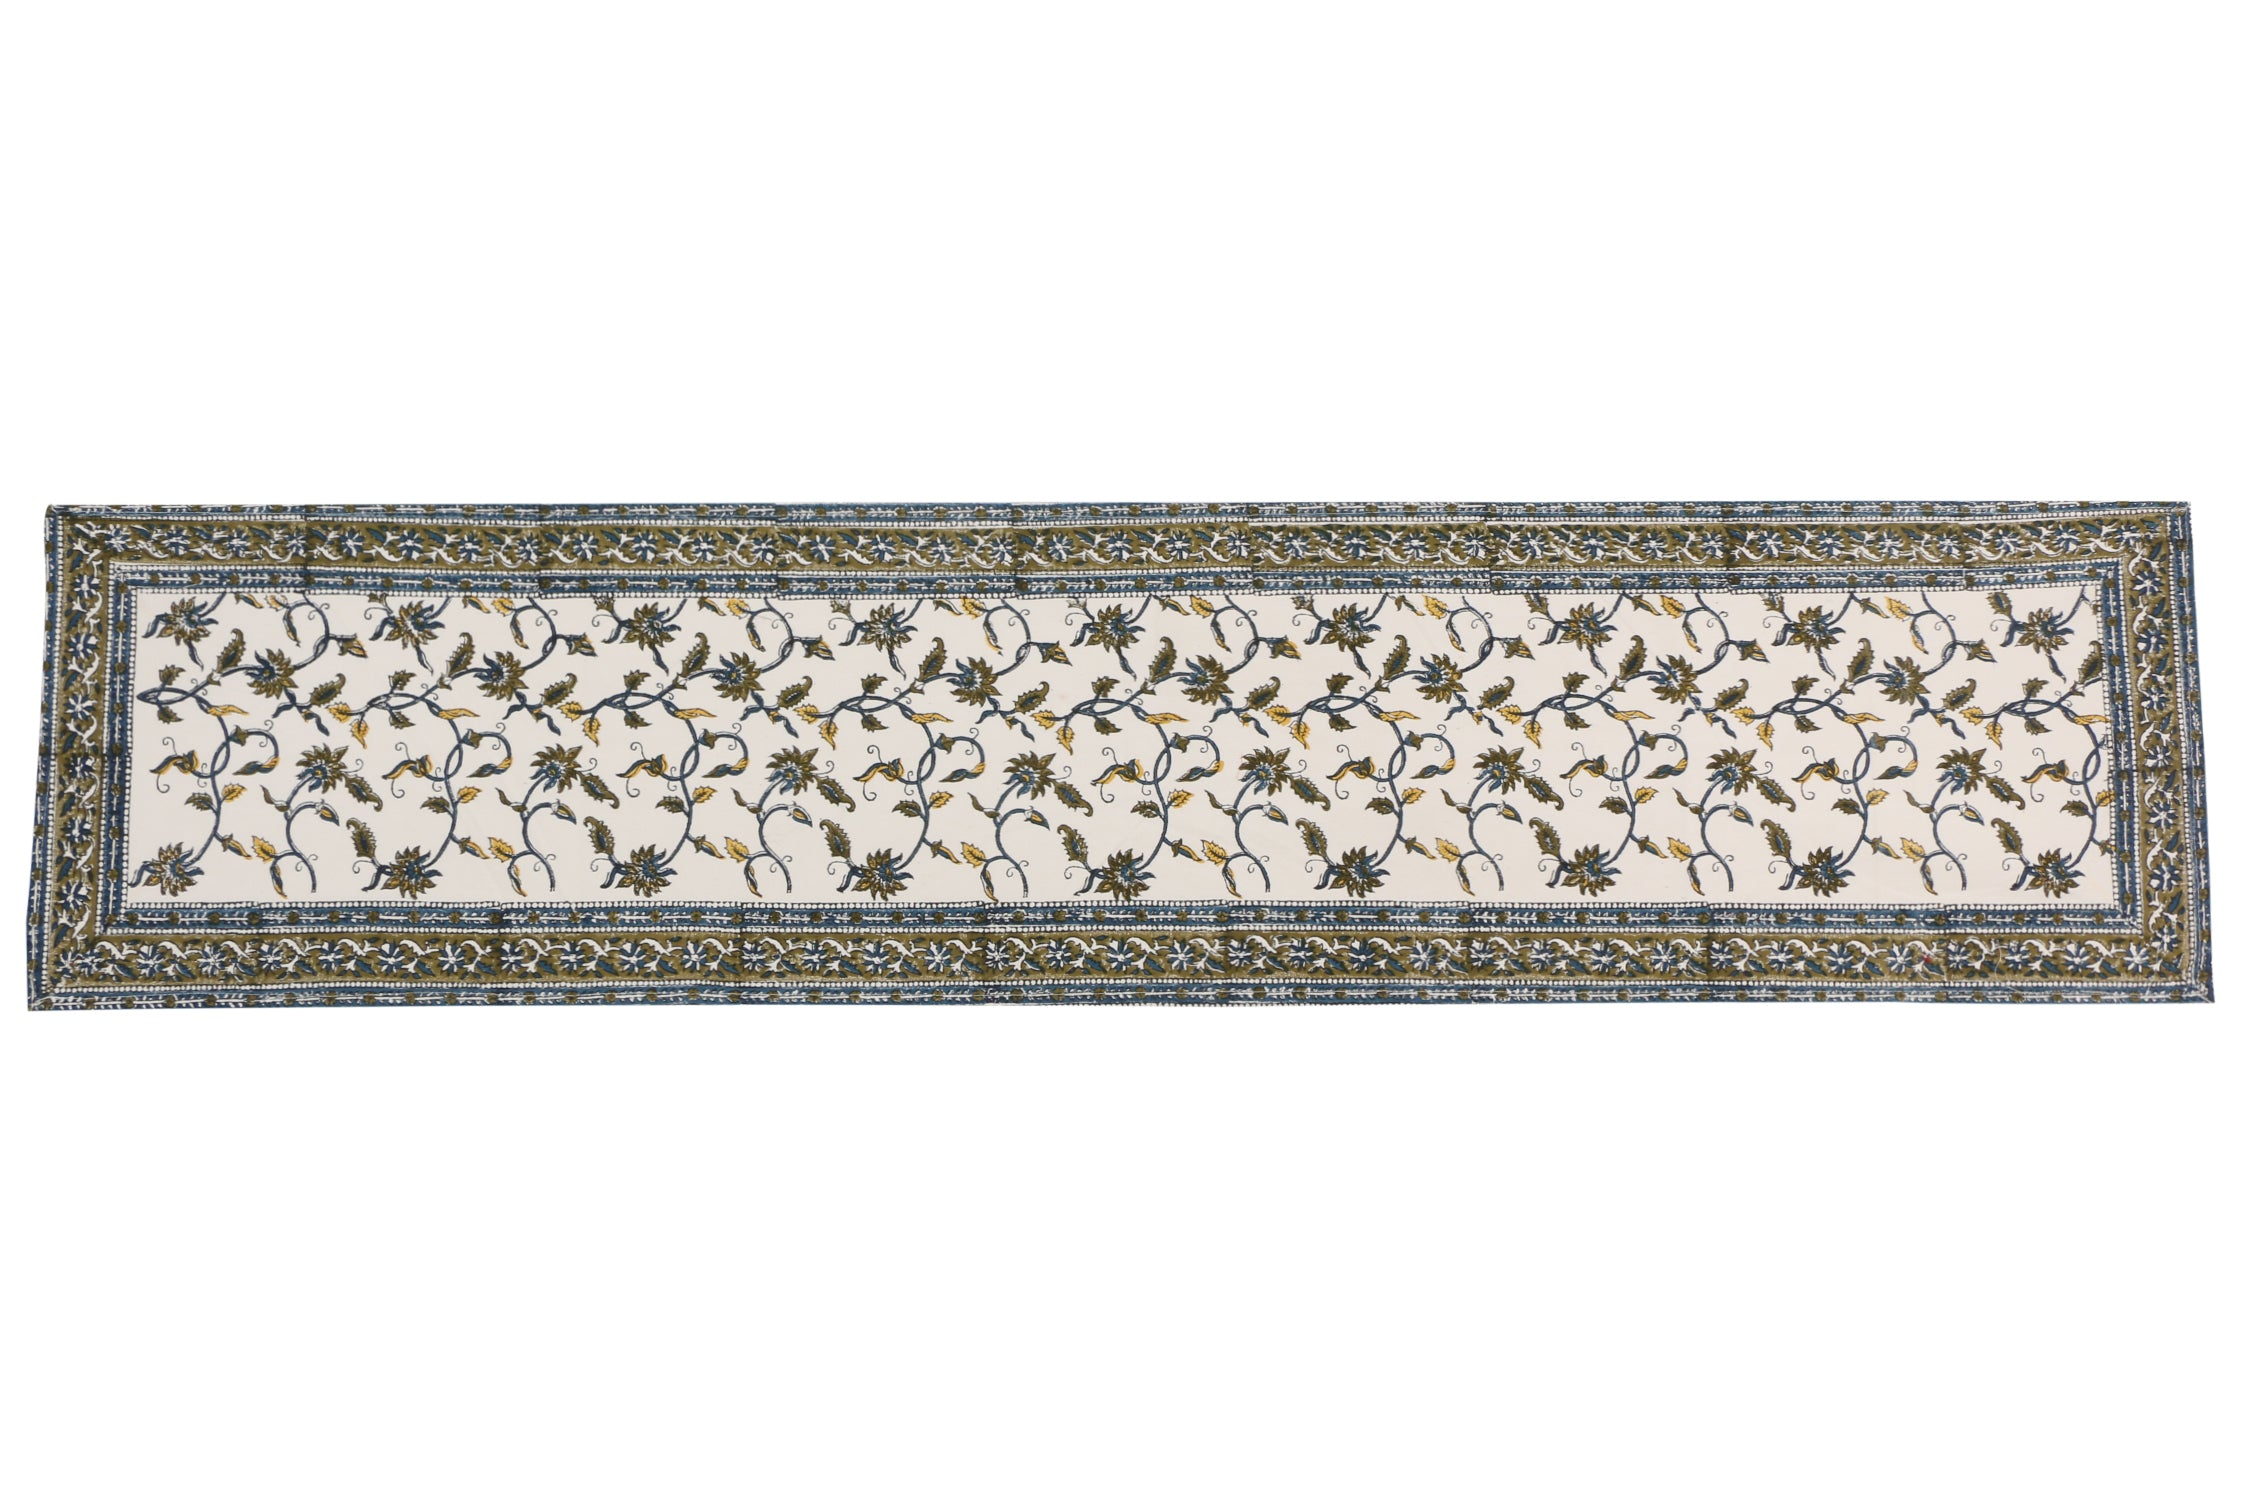 Cotton Floral & Paisley Table Runner - 13 x 54 - SNYTRV8